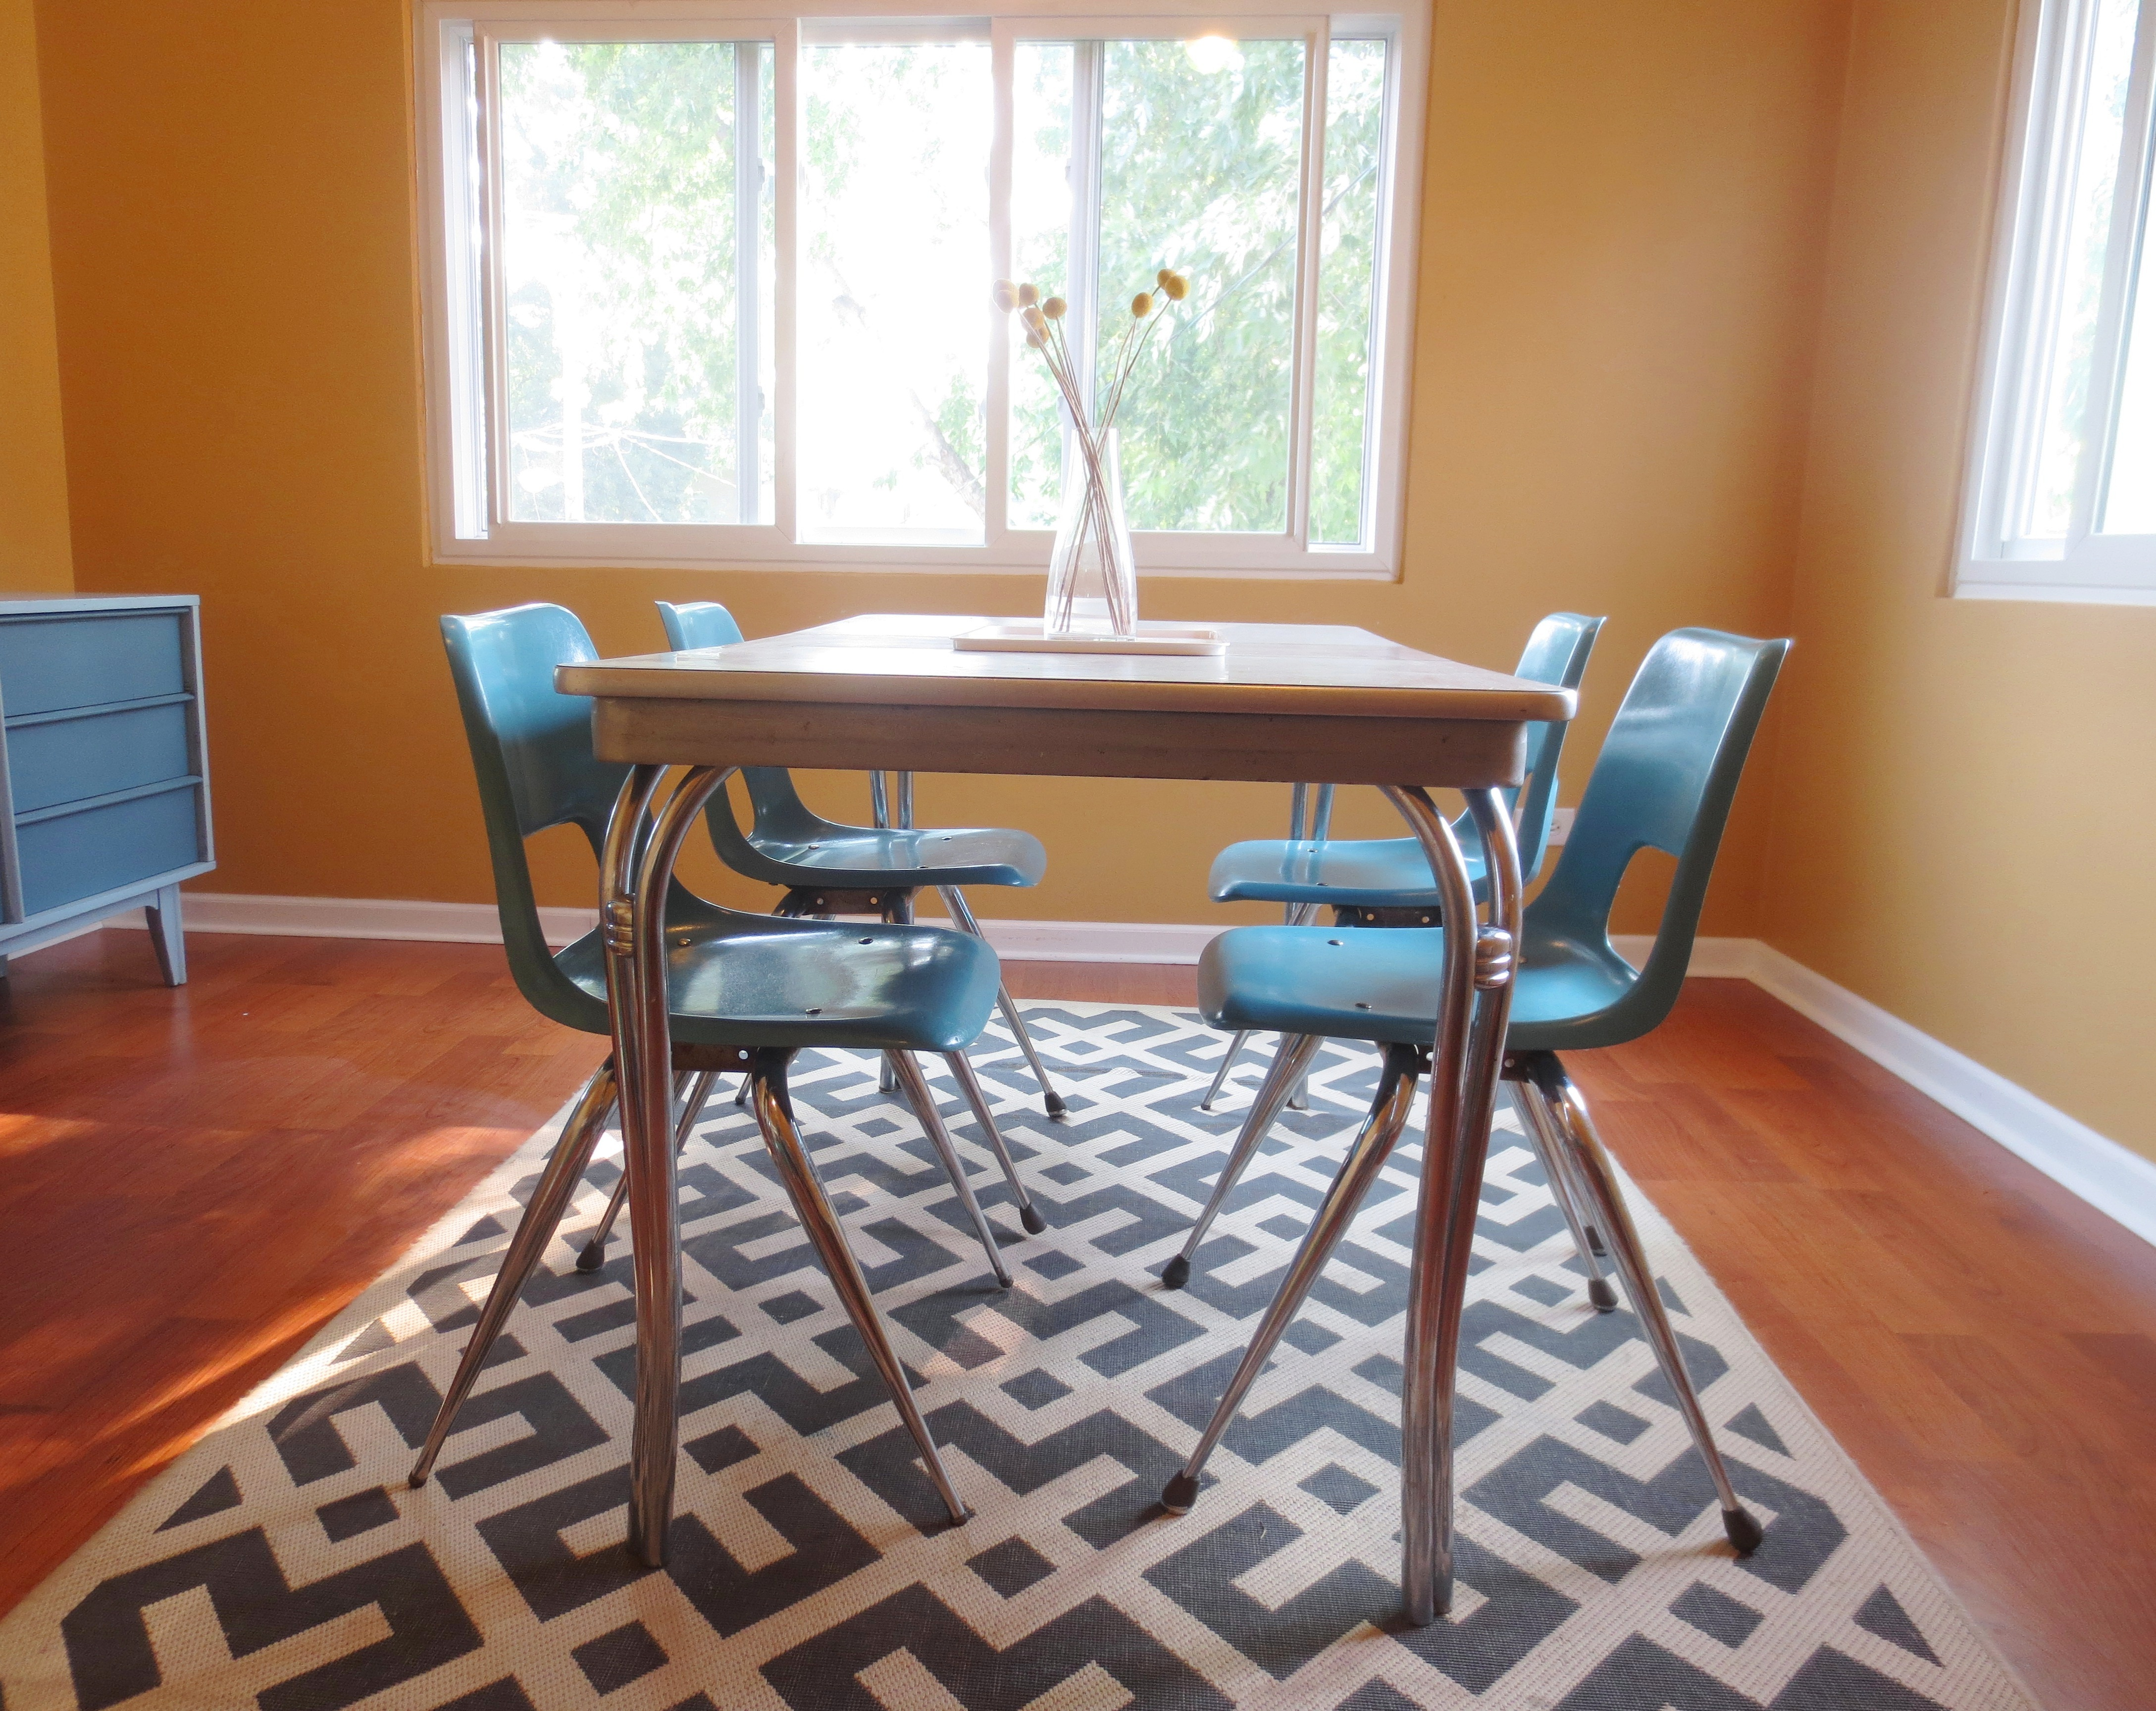 From bowling alley to dining room refinishing fiberglass for Refinishing dining room chairs